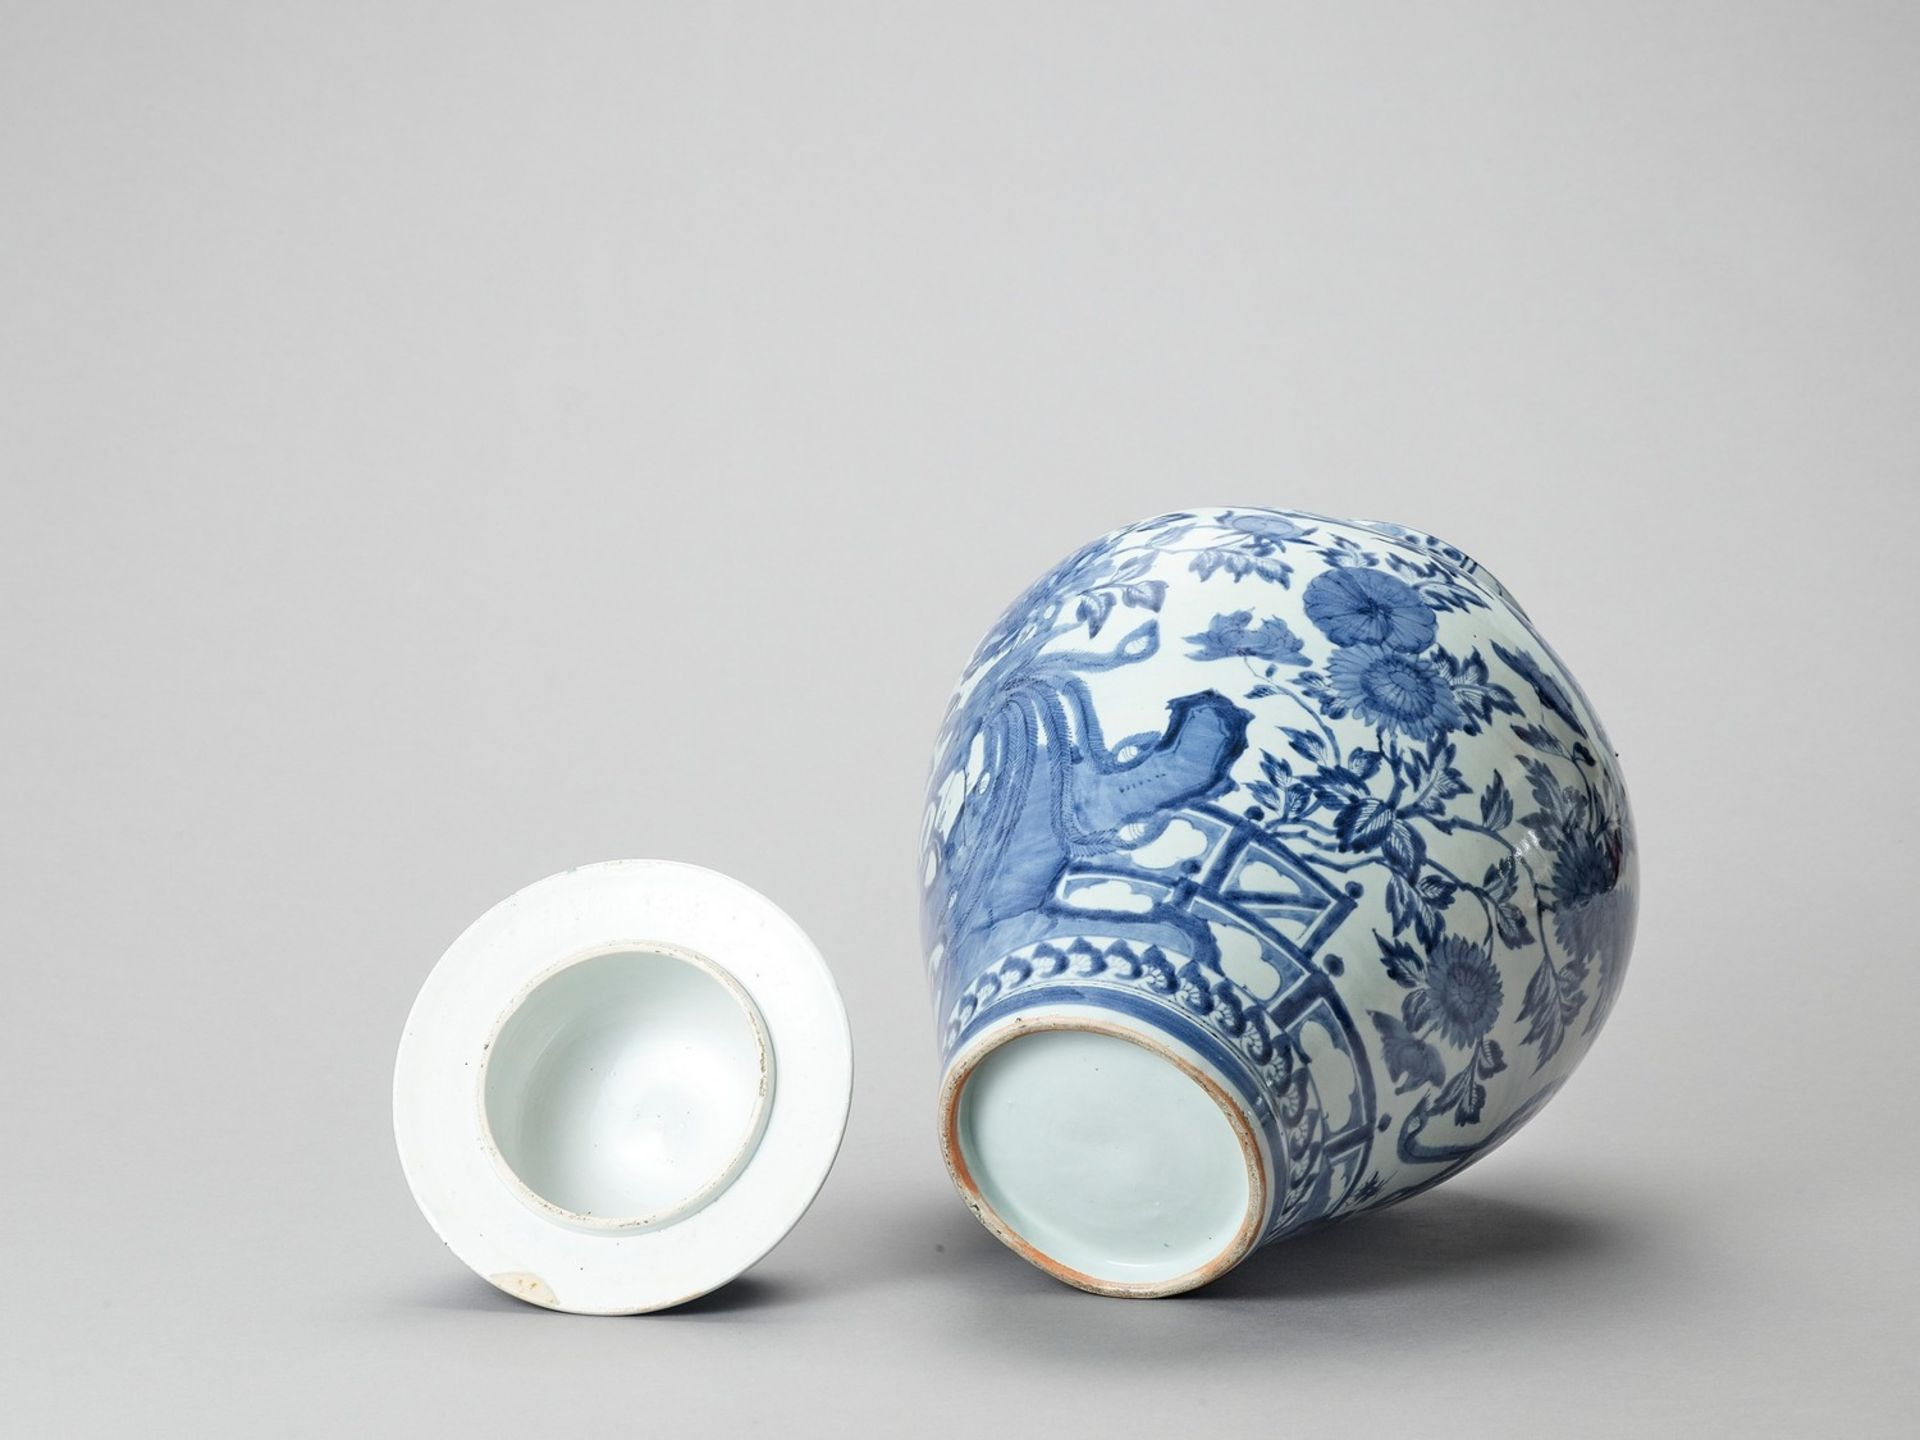 A LARGE BLUE AND WHITE PORCELAIN JAR AND COVER - Bild 6 aus 6